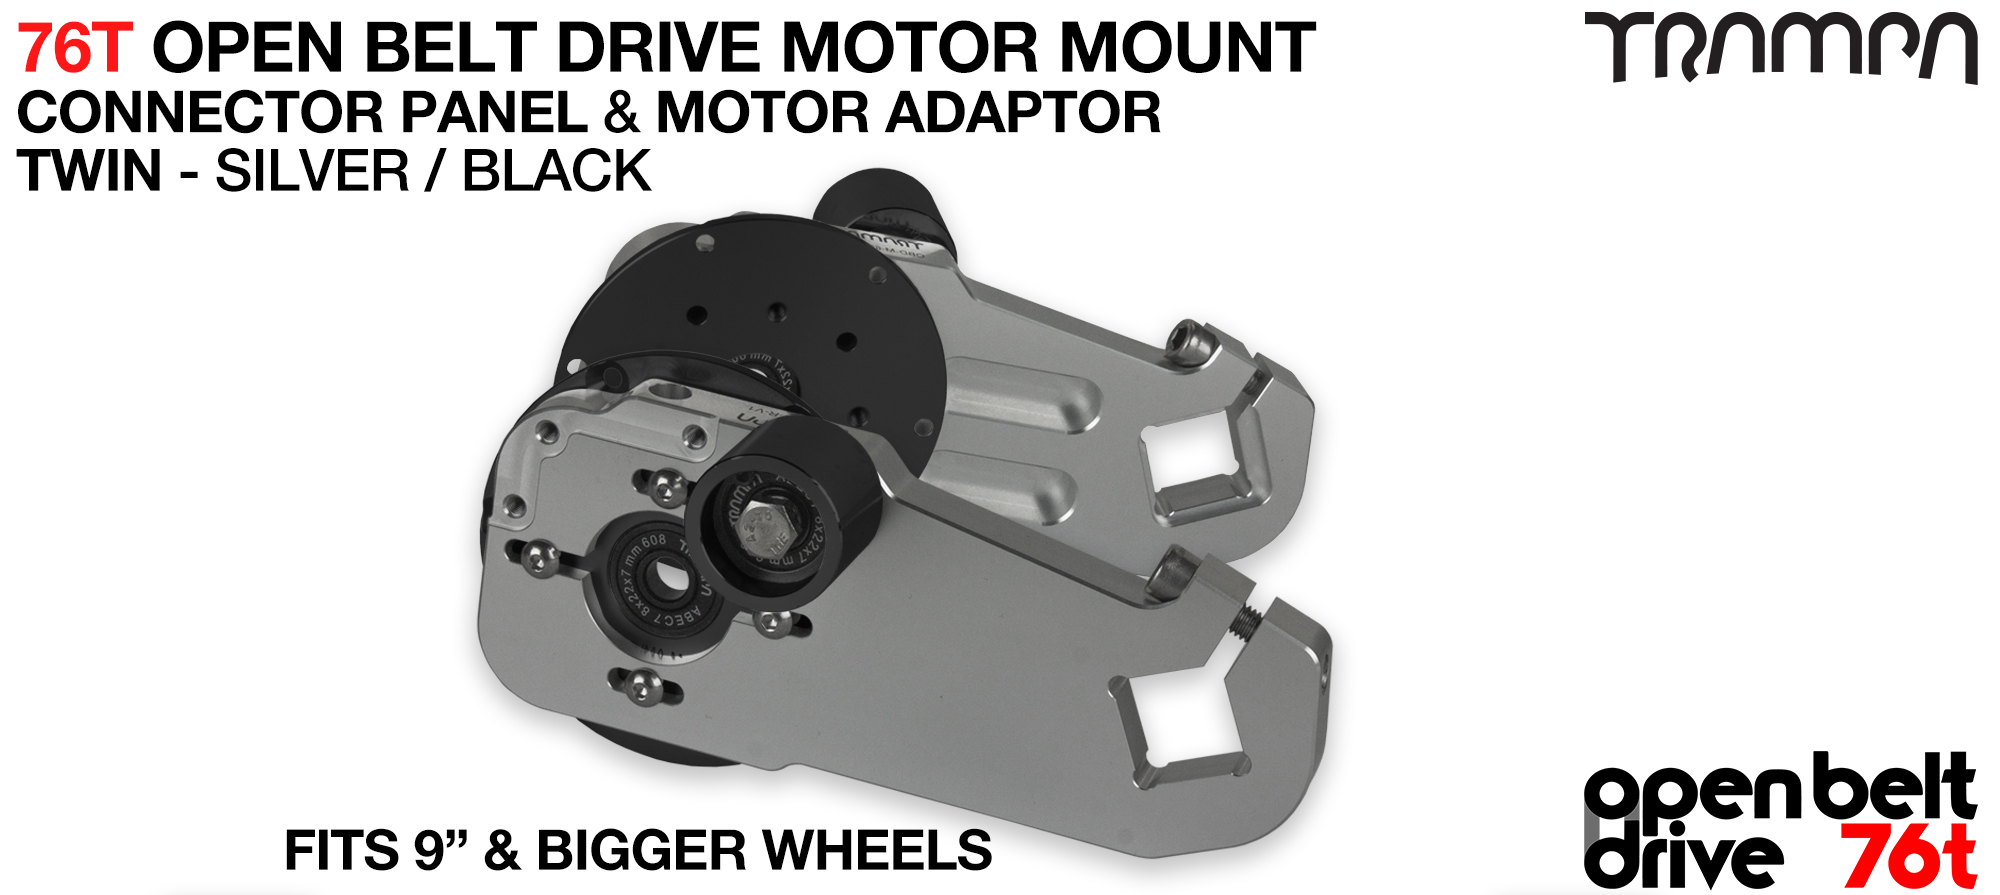 76T Open Belt Drive Motor Mount & Motor Adaptor - TWIN SILVER